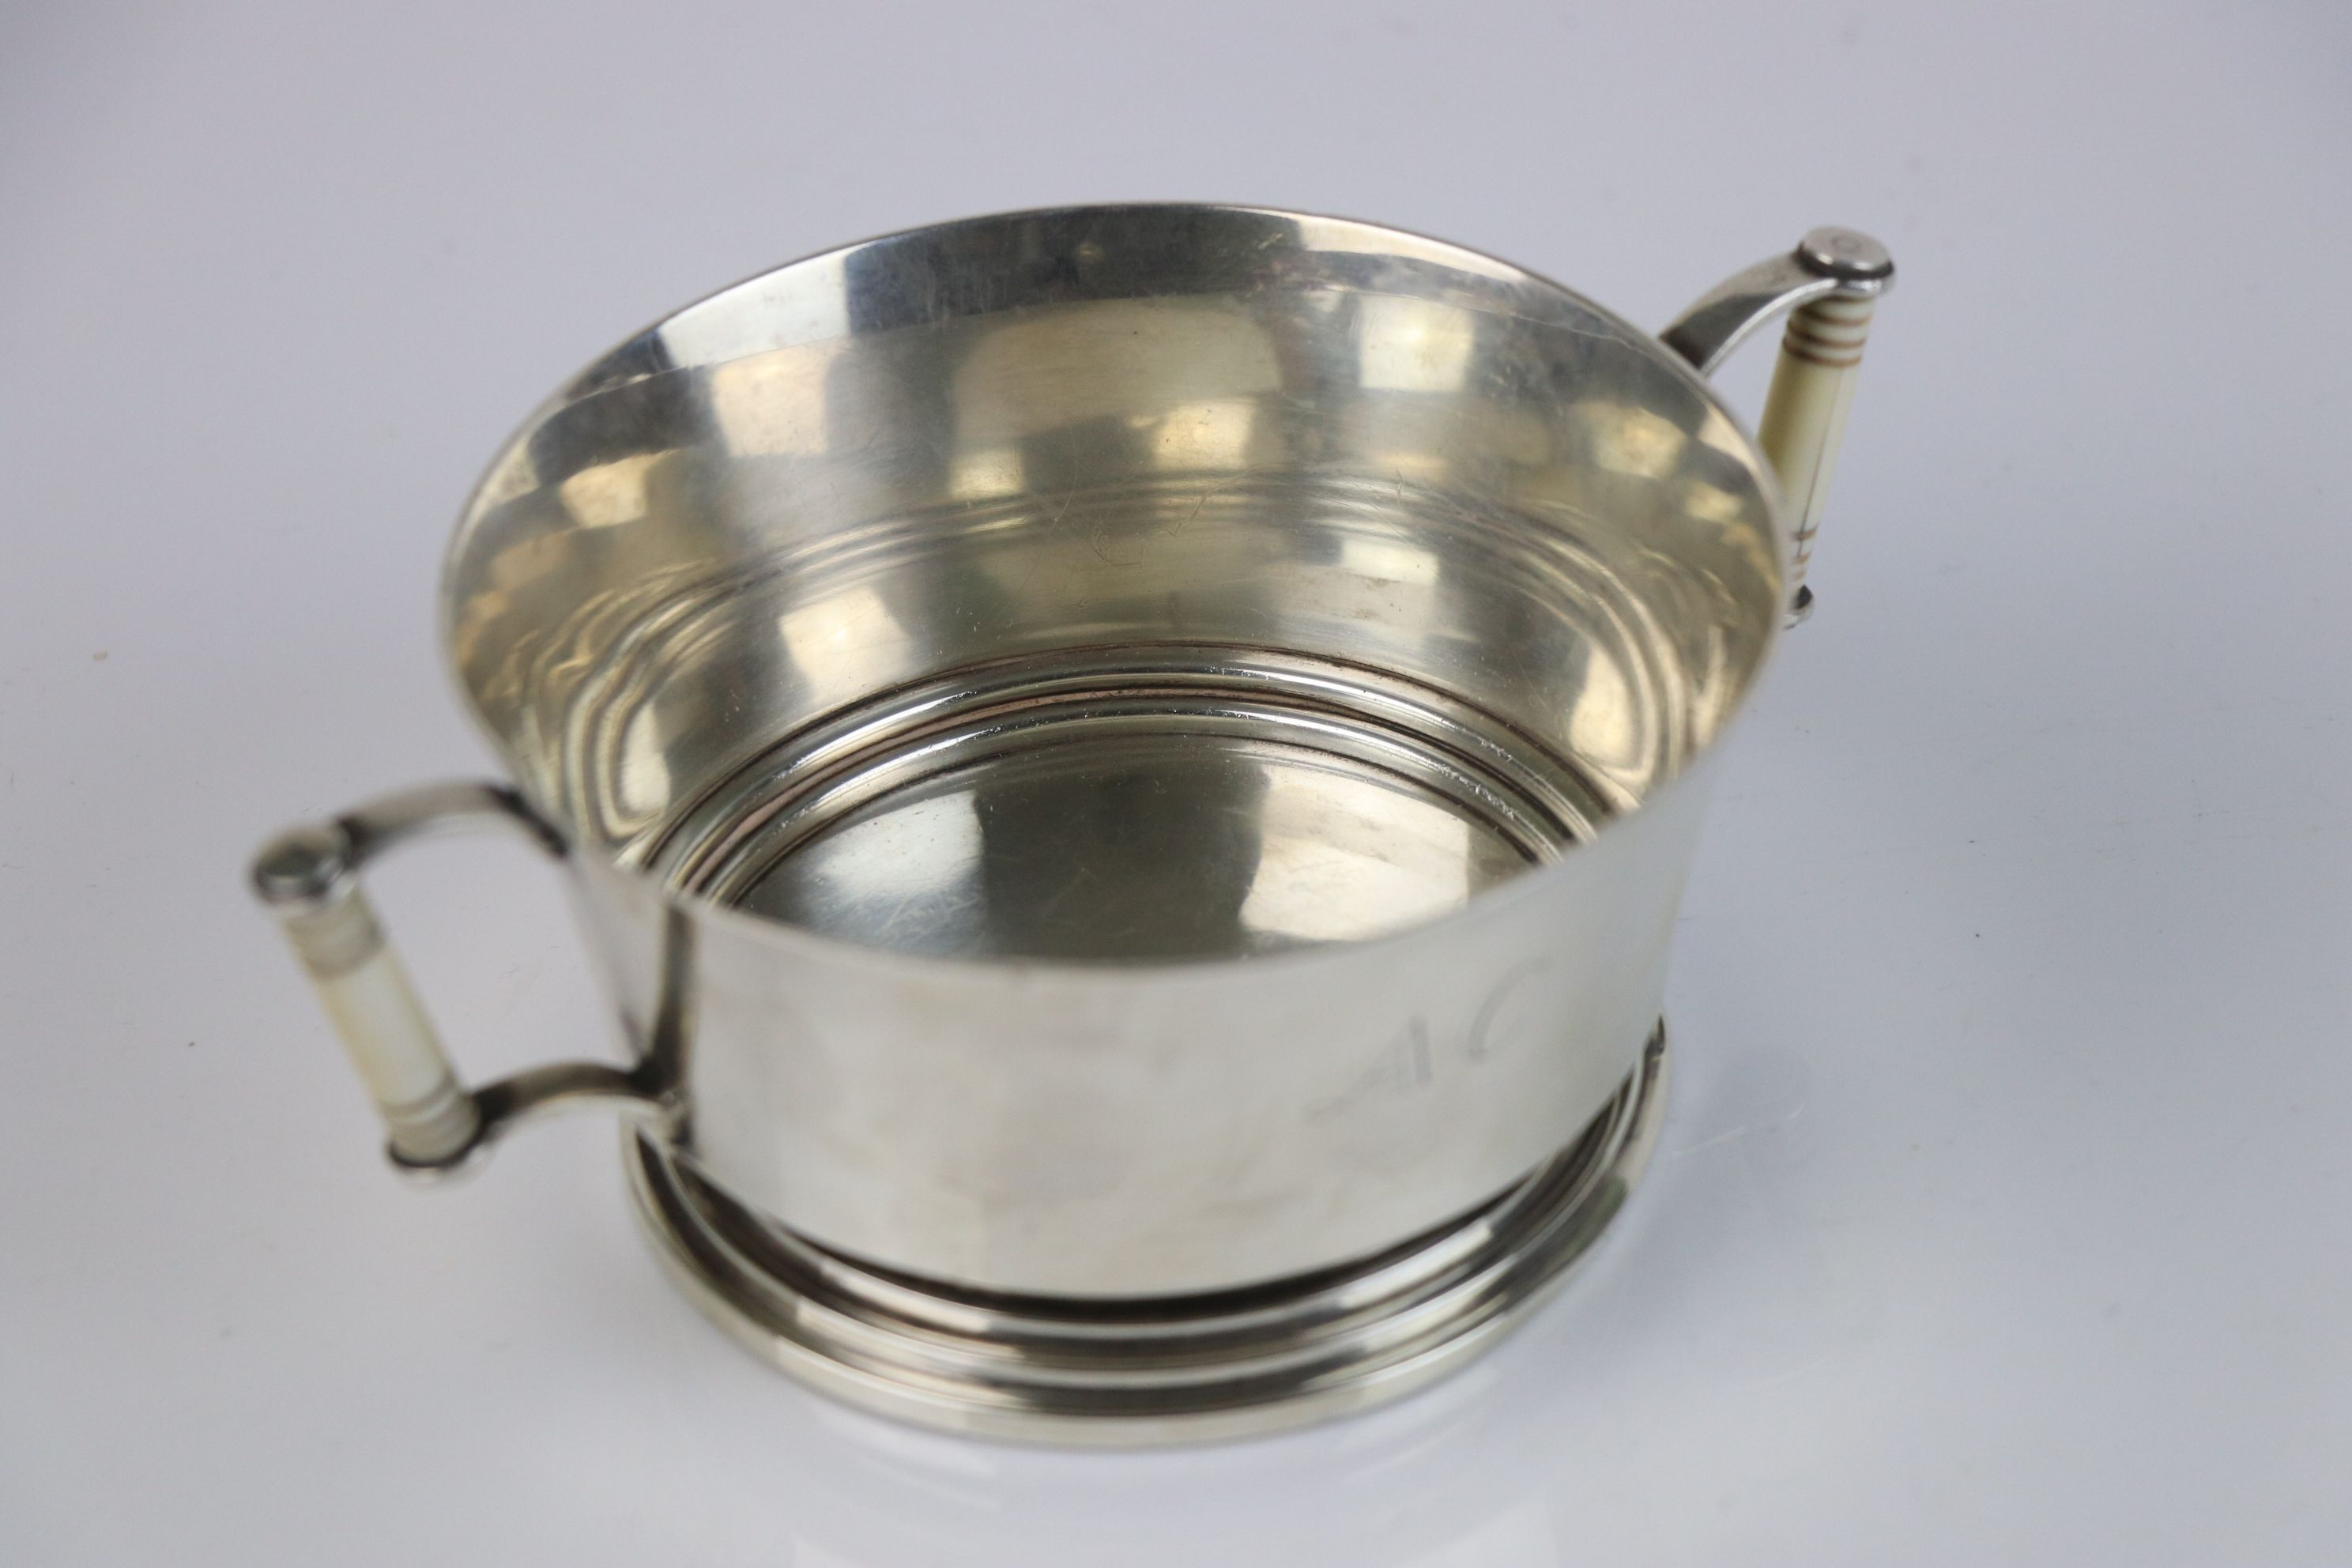 A fully hallmarked Britannia silver double handled christening cup with decorative ivory handles, - Image 3 of 5